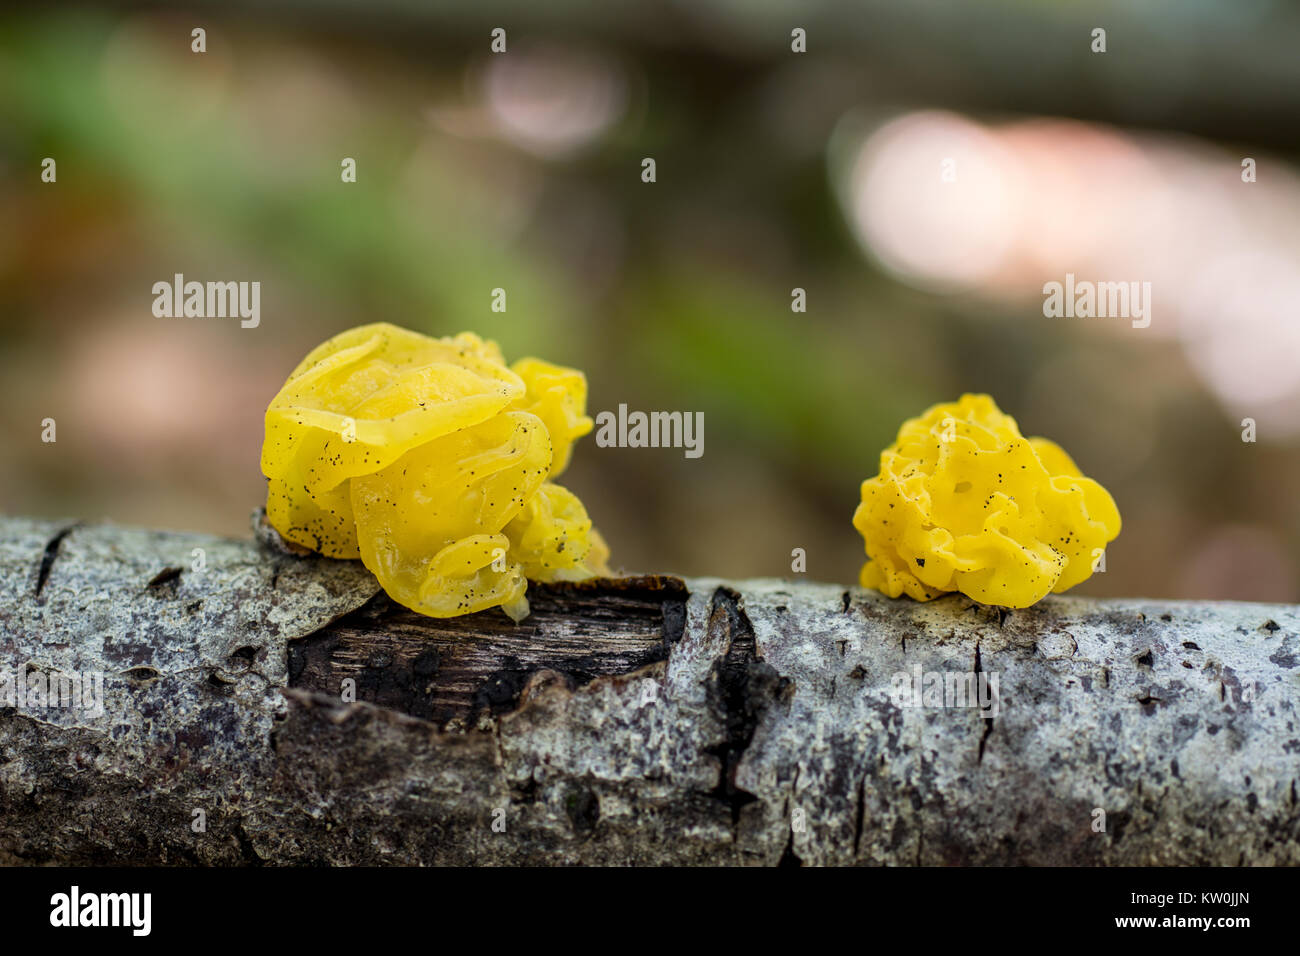 Tremella mesenterica. Nice fungus that grows on dead wood. Photographed in a chestnut forest. - Stock Image